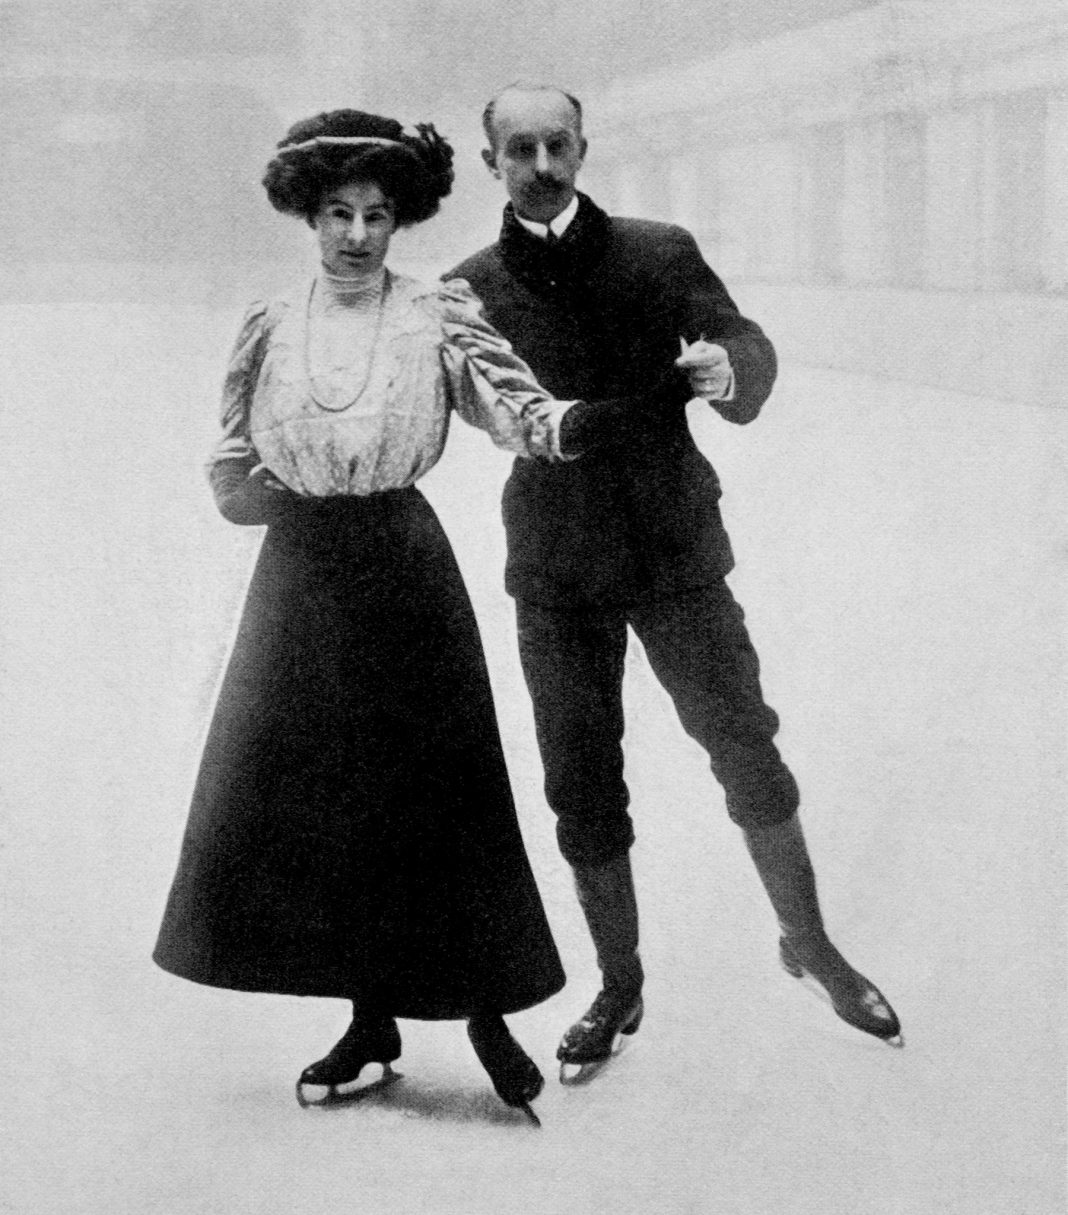 Two figure skaters in 1908 (© PA Images Archive/Getty Images)